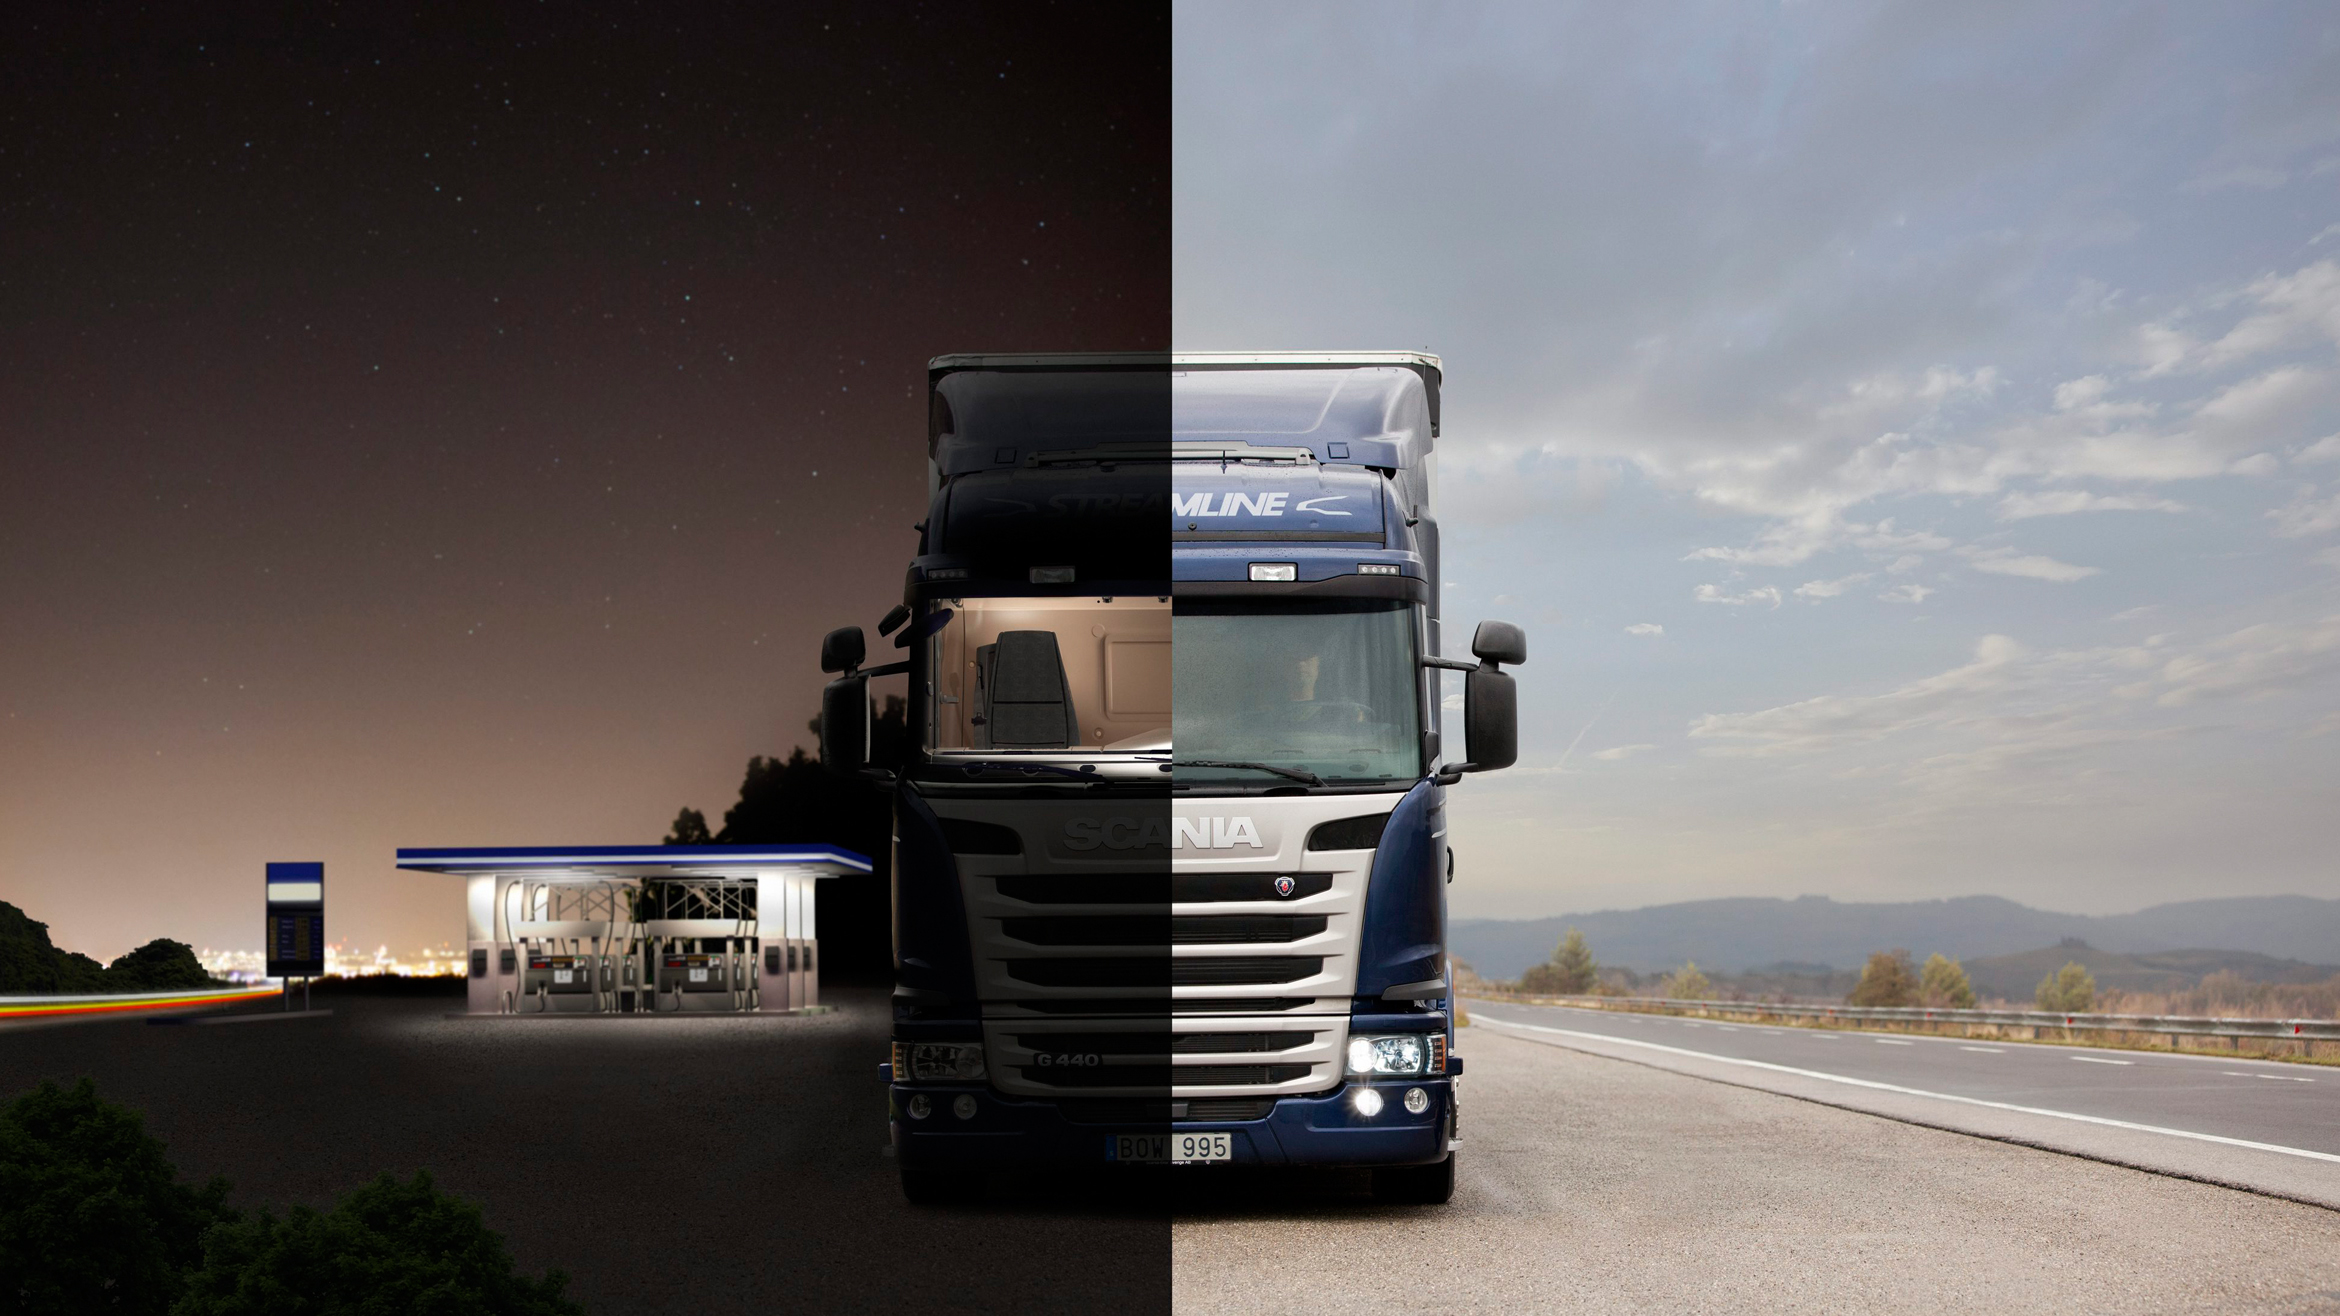 A Scania truck split down the middle showing night at a station and day beside a road